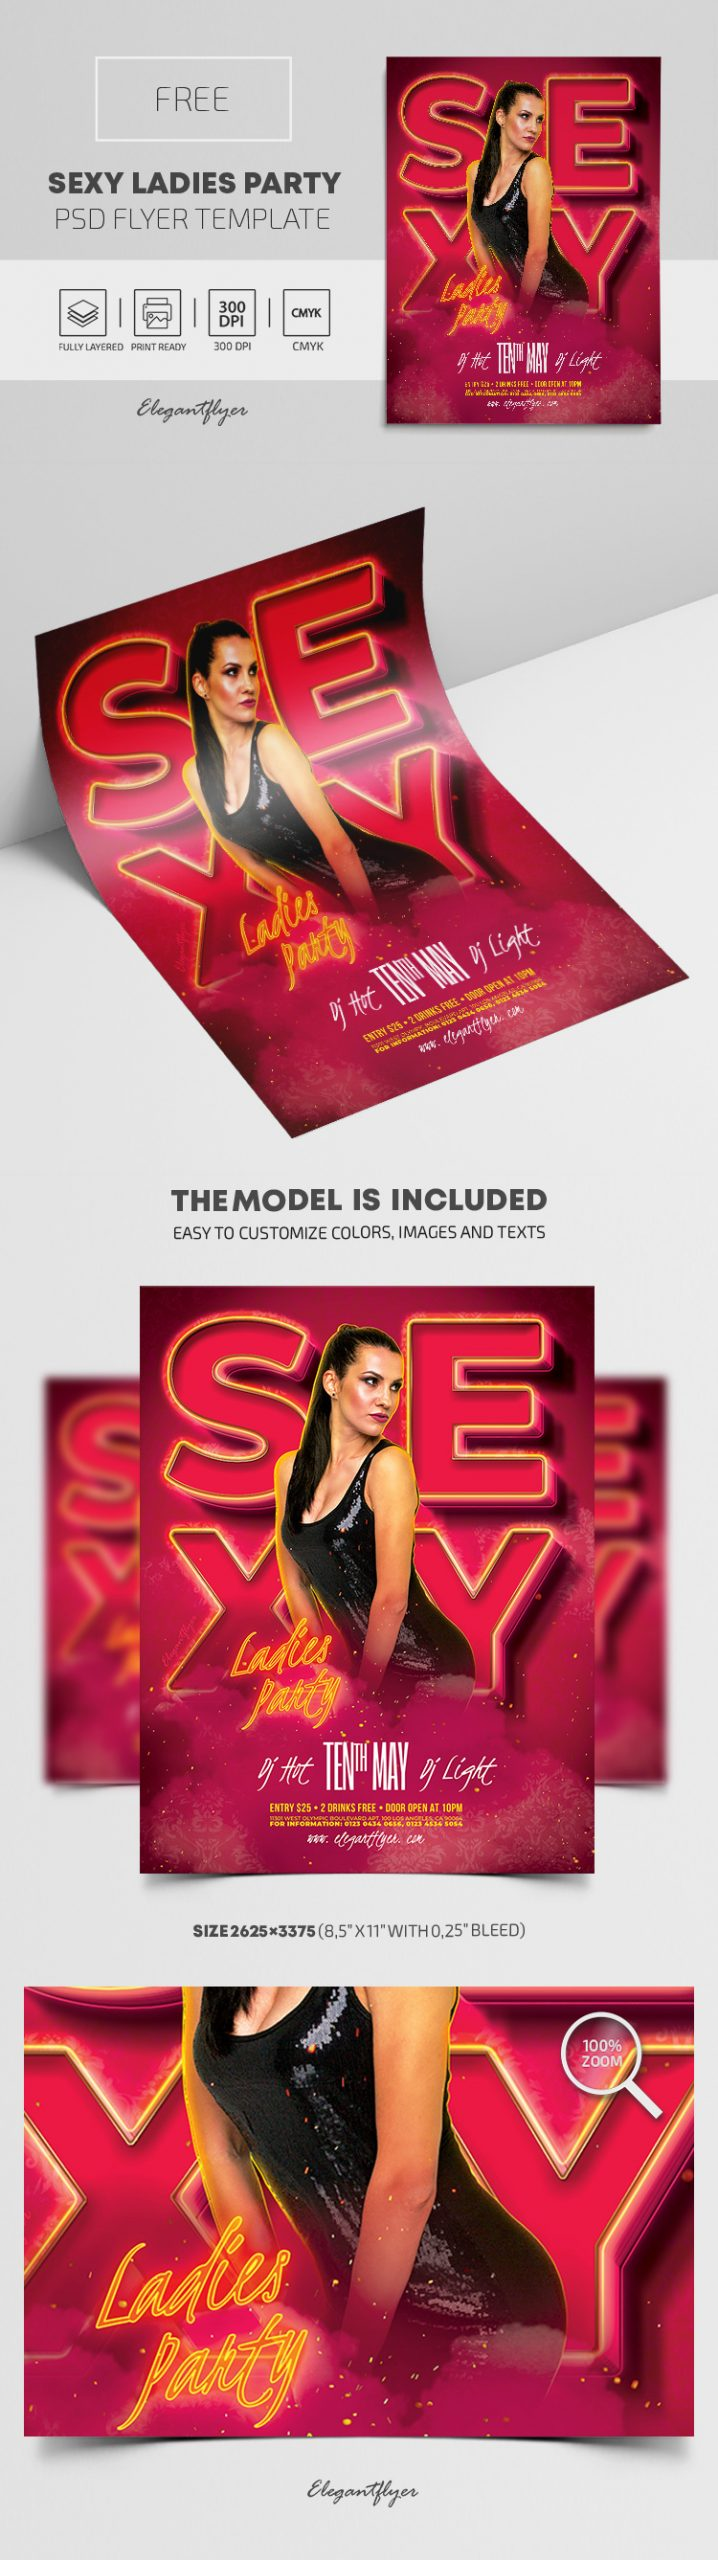 Sexy Ladies Party – Free PSD Flyer Template